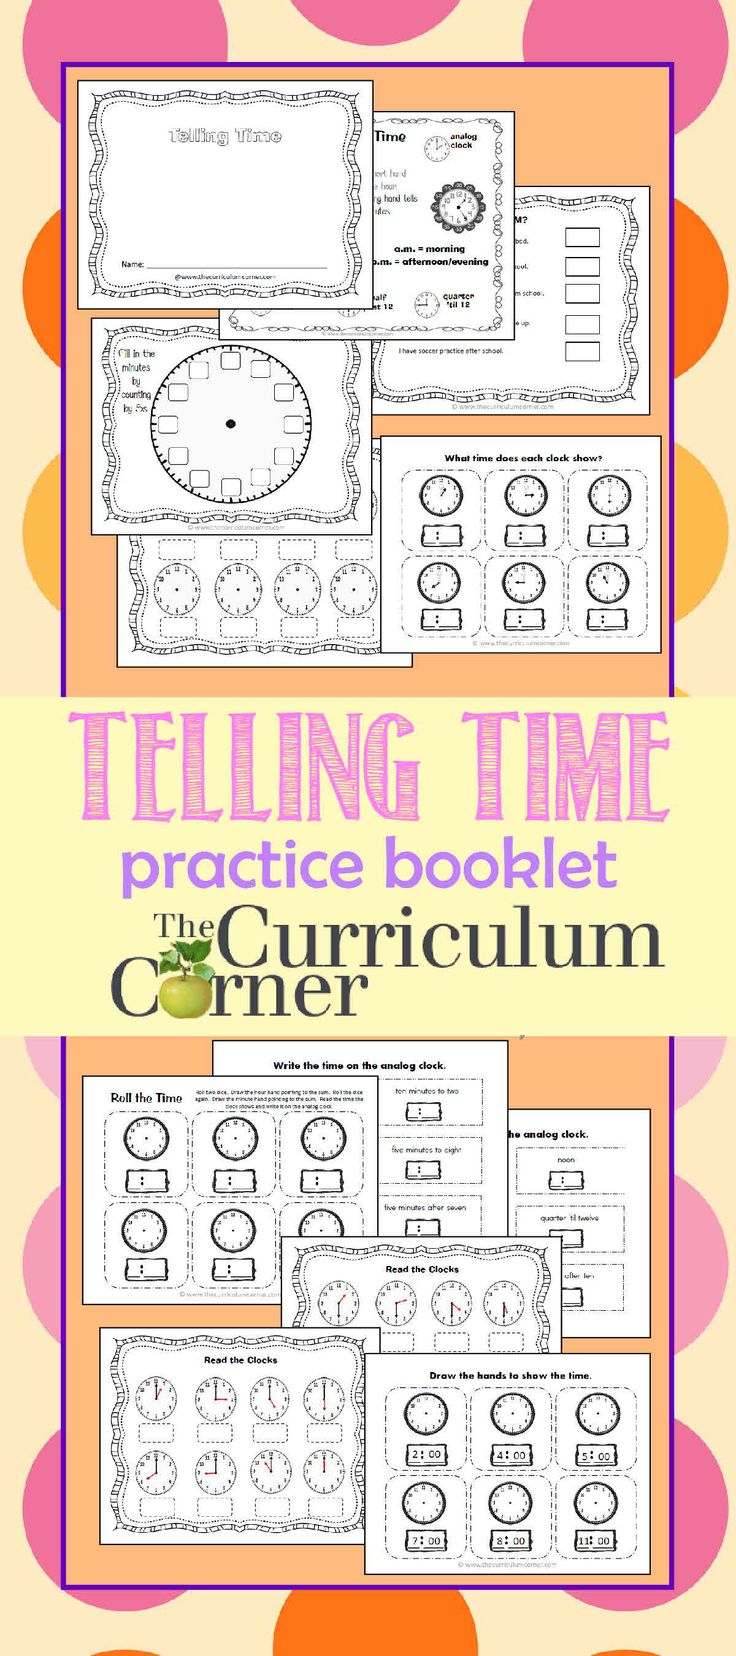 Worksheet Kindergarten Curriculum Free 1000 ideas about kindergarten curriculum on pinterest telling time practice booklet free from the corner